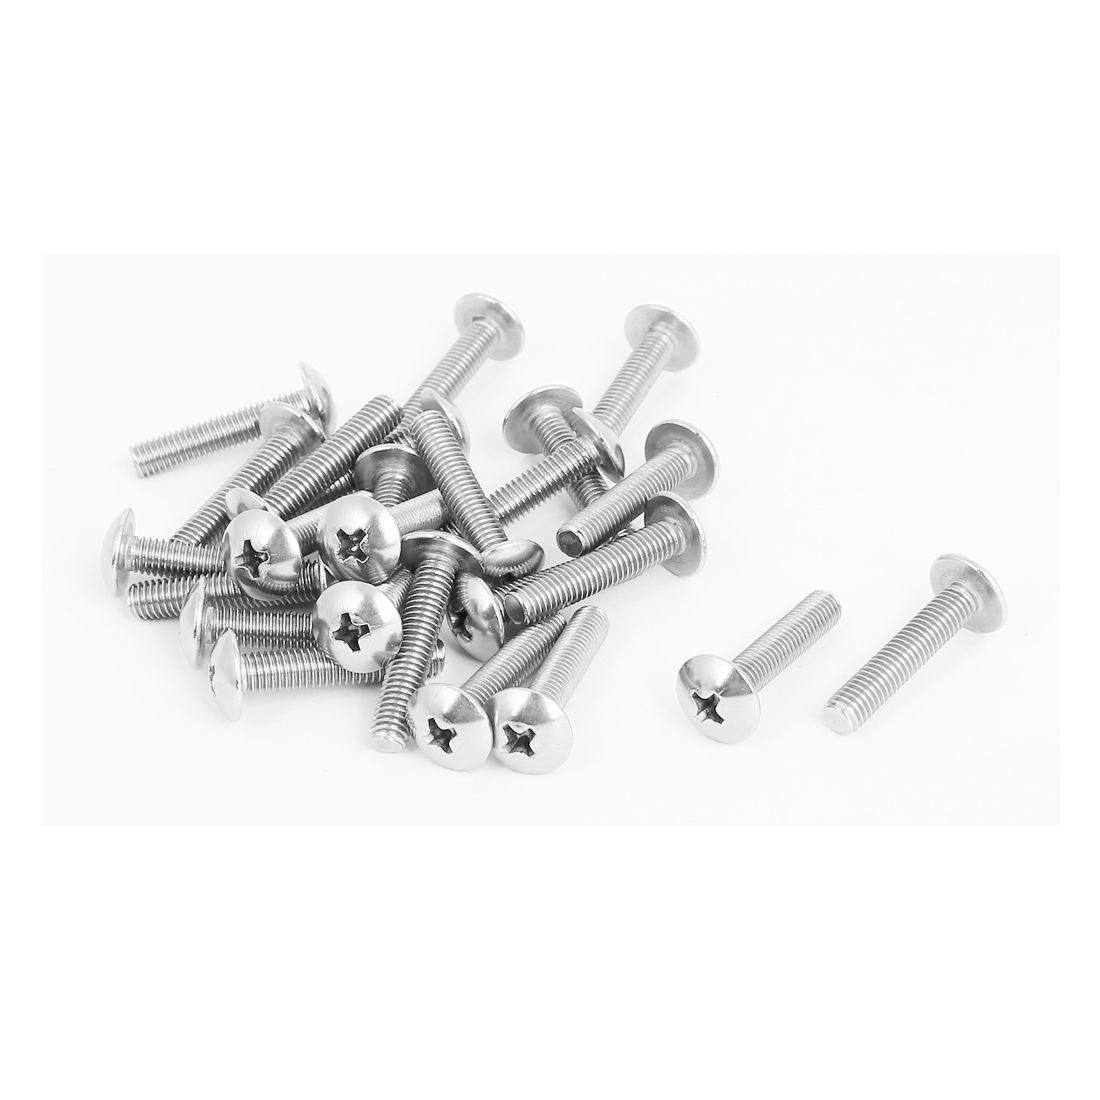 M5x25mm Stainless Steel Truss Phillips Head Machine Screws 25pcs